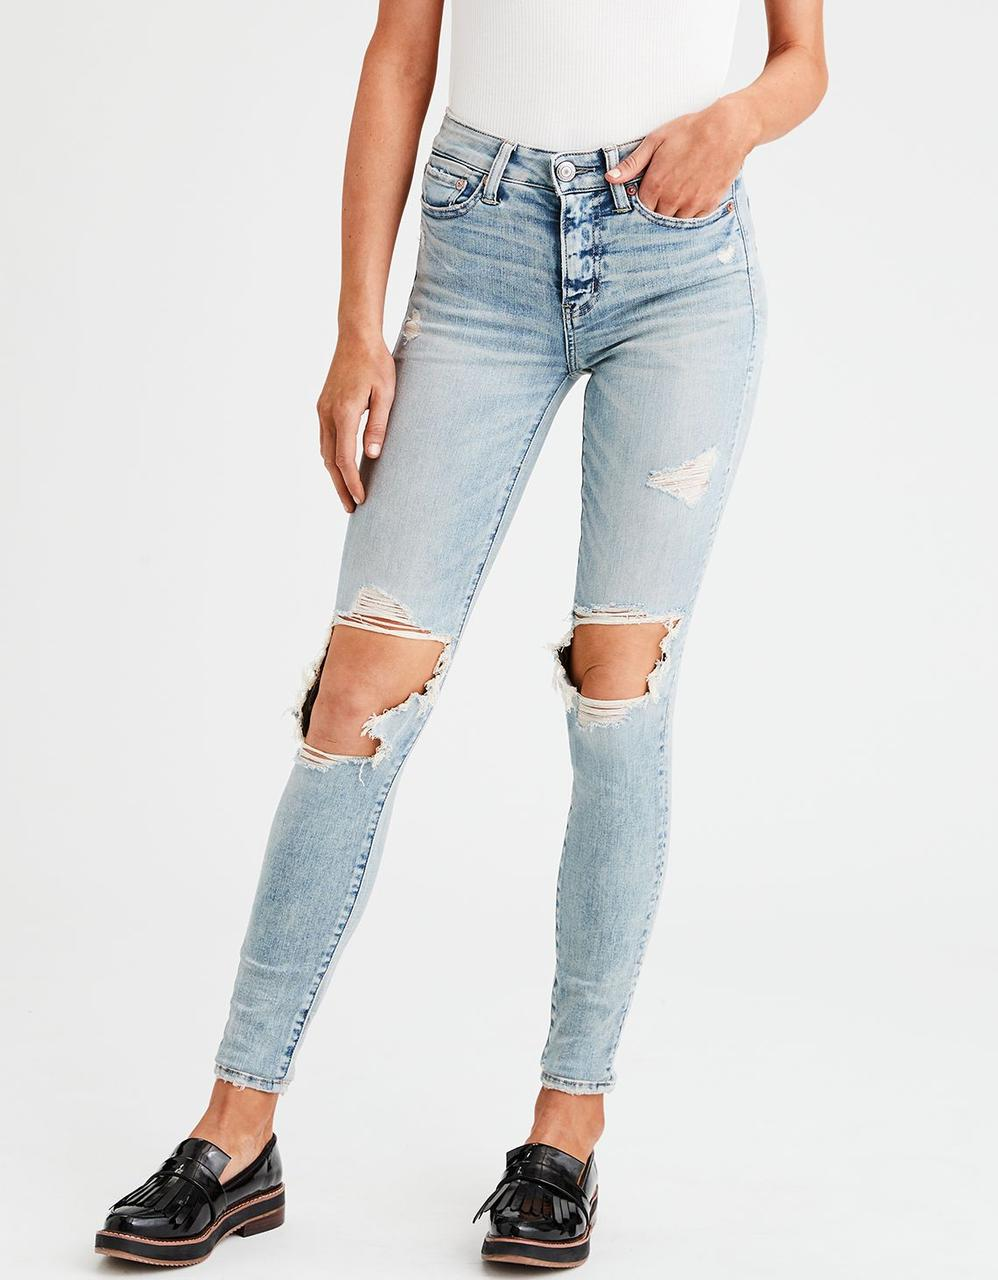 a69509e9 American Eagle Jeans, AE NE(X)T LEVEL HIGH-WAISTED JEGGING for Women ...